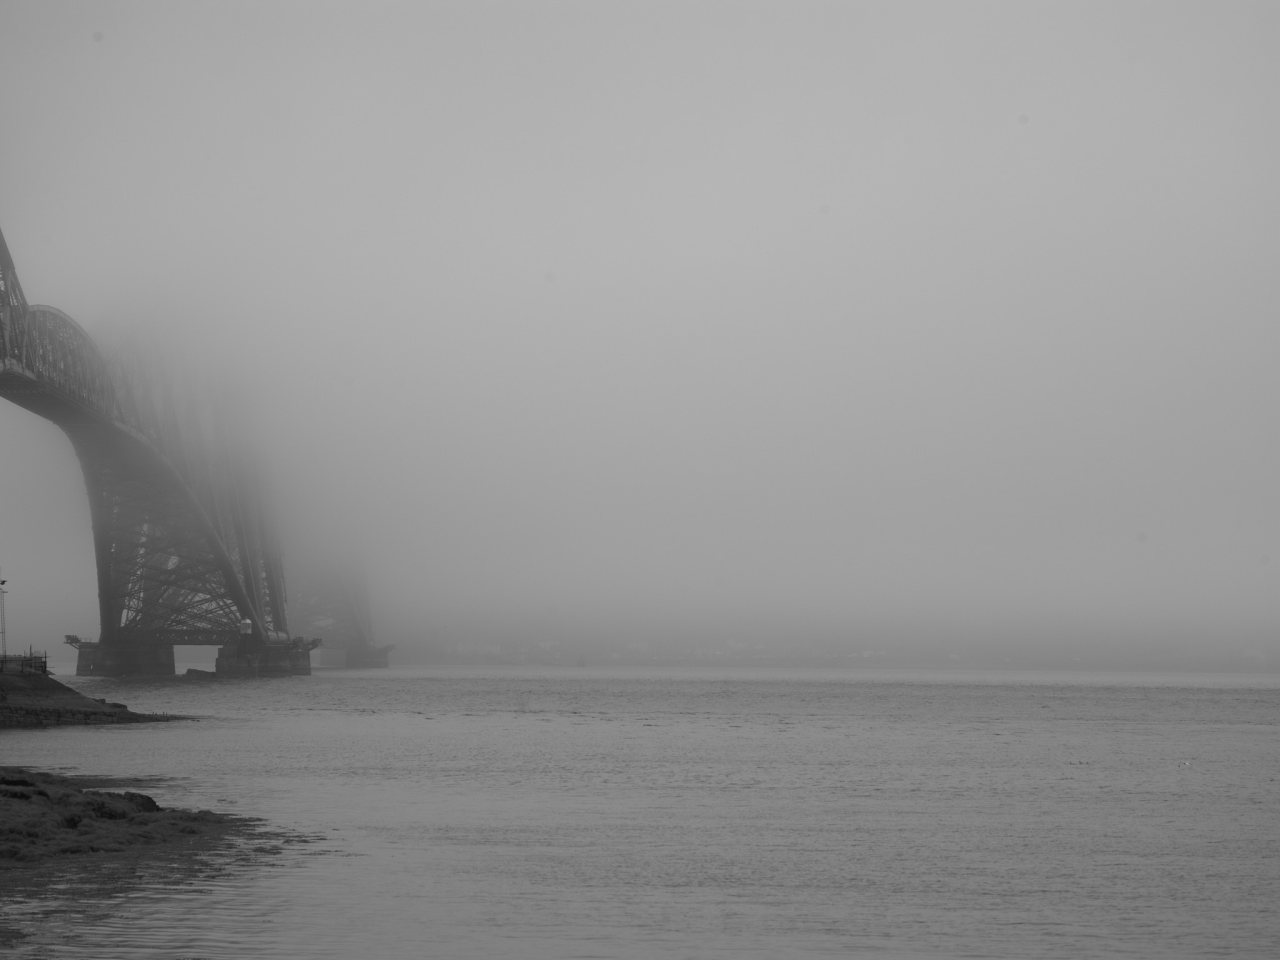 Fifth of Forth in Fog